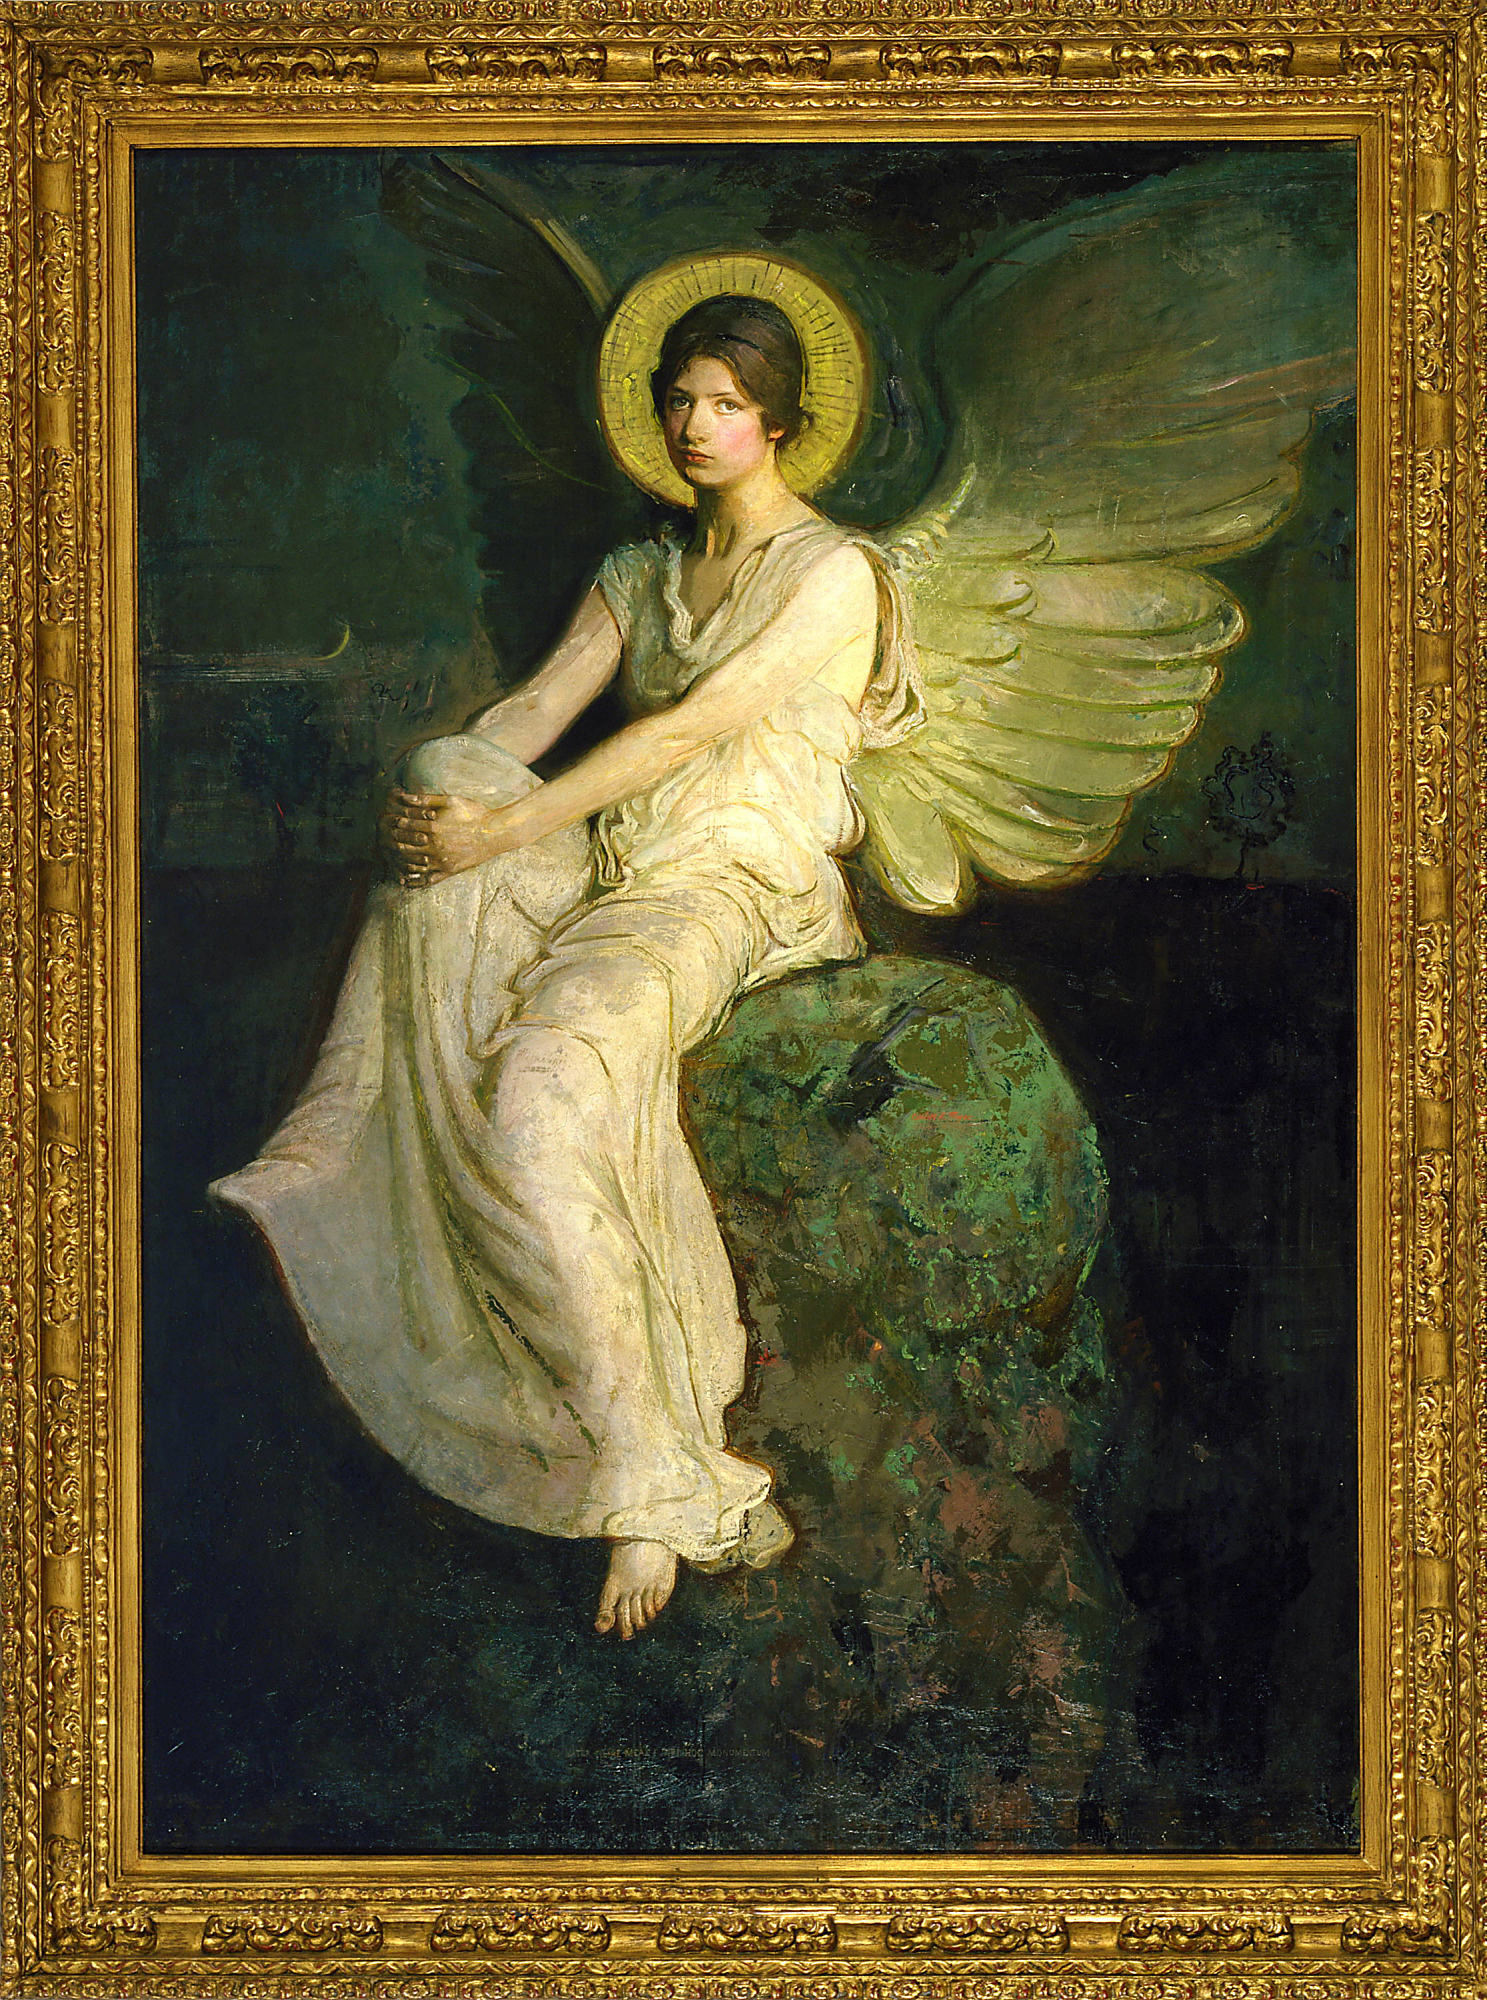 with frame: Winged Figure Seated Upon a Rock